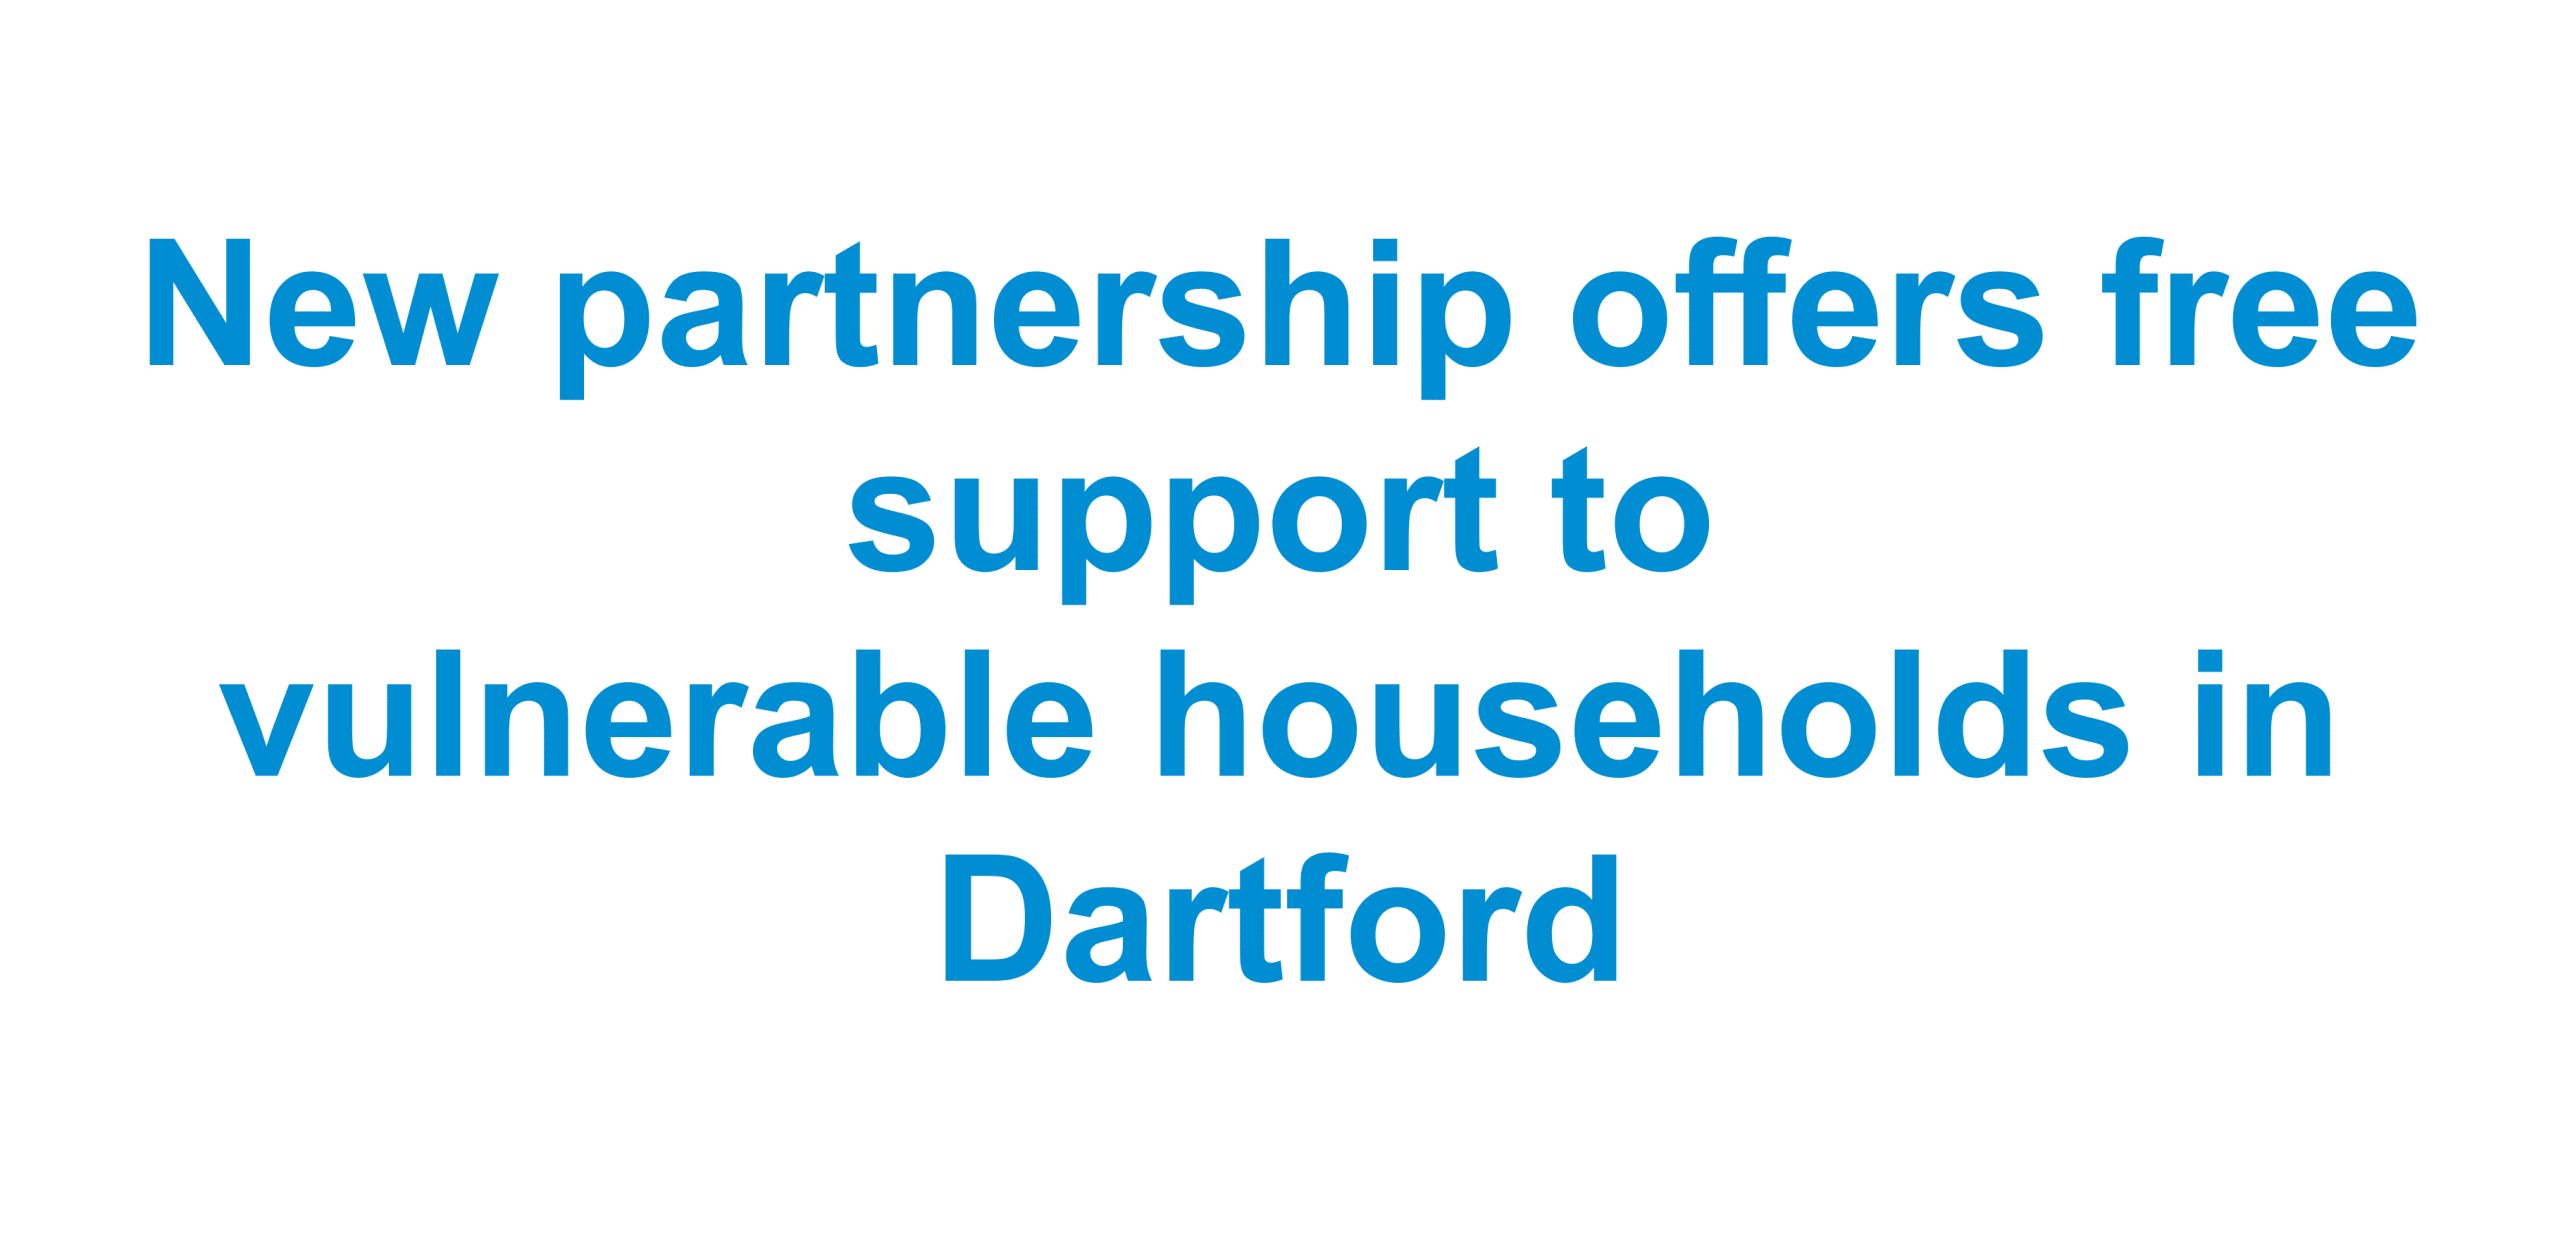 New partnership offers free support to vulnerable households in Dartford